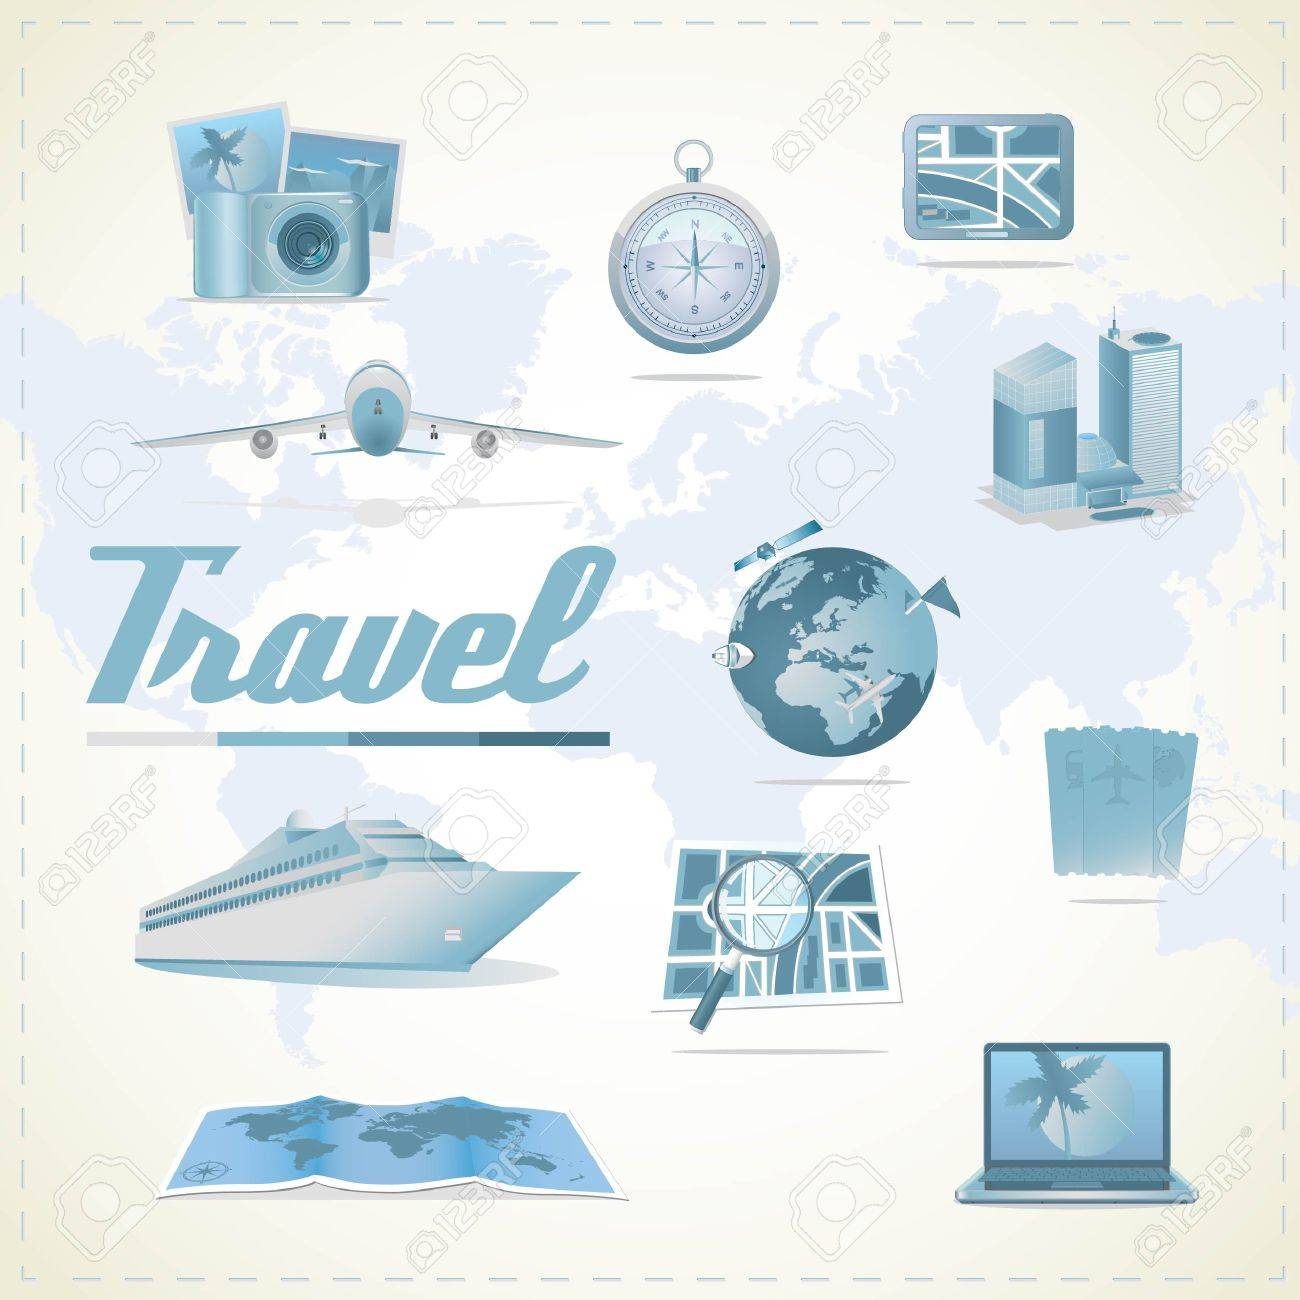 Travel icons. Different types of transportation, compass, maps, gps, notebook, camera, hotel. Stock Vector - 17310778